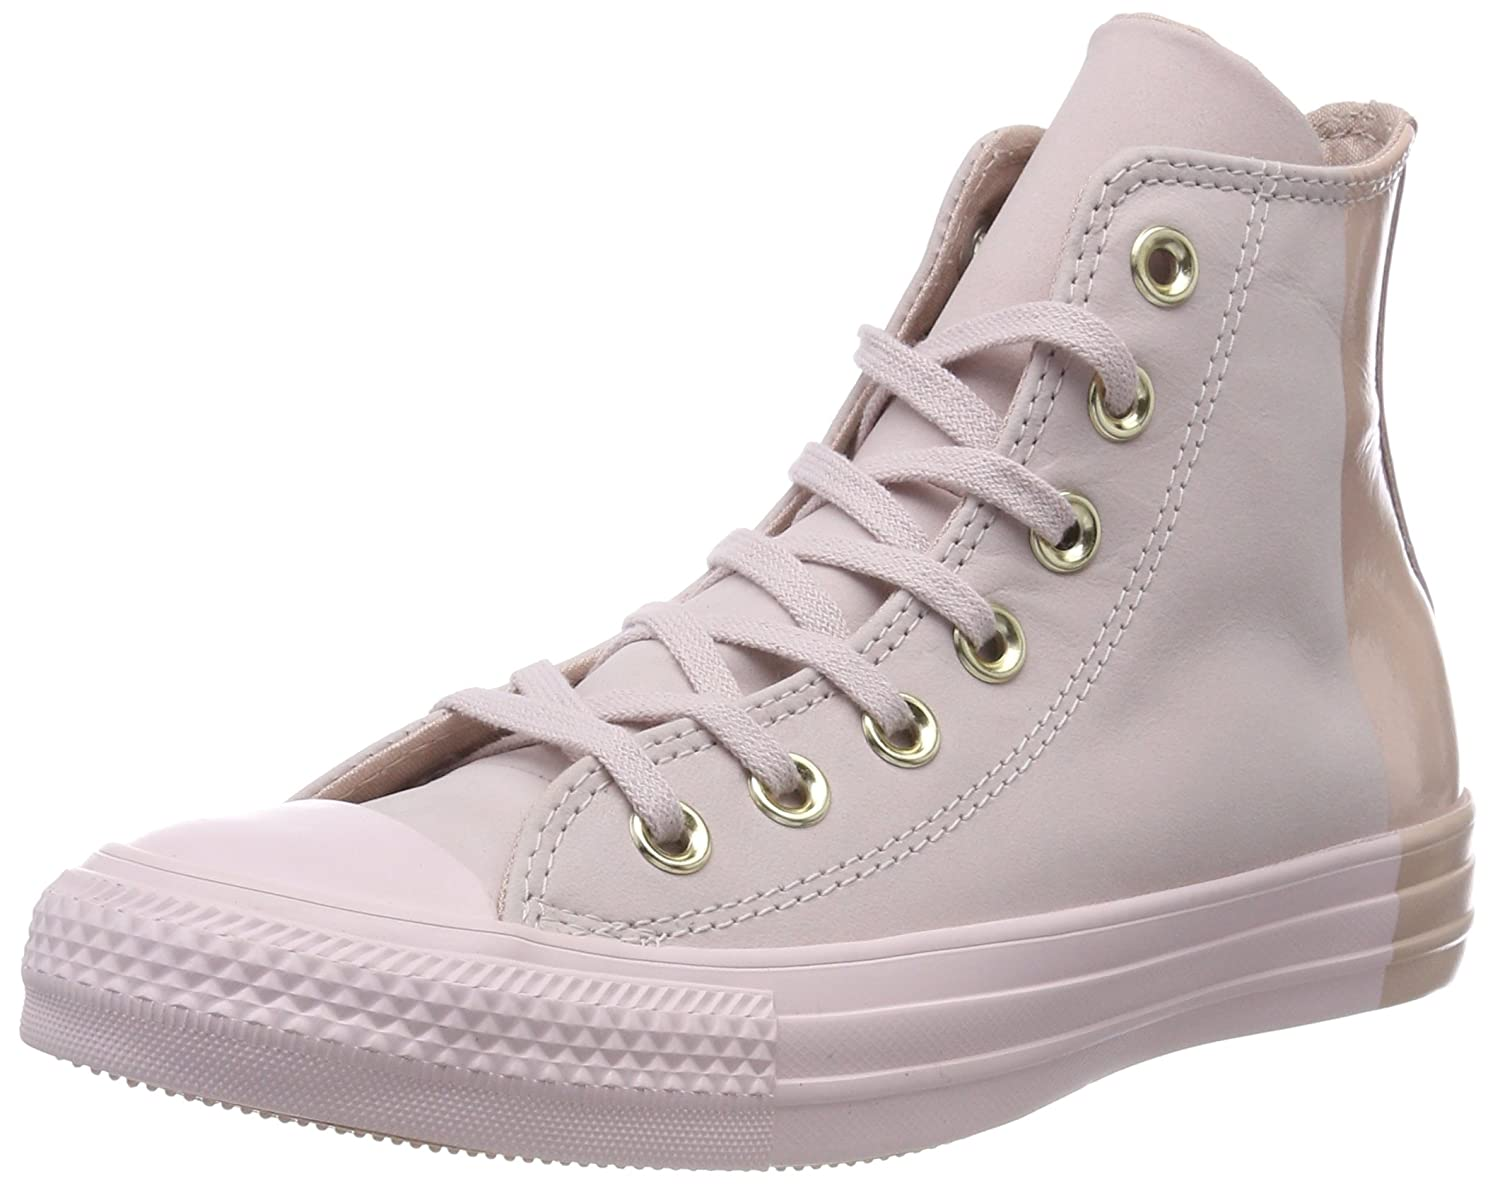 Converse Unisex-Erwachsene CTAS Hi Fitnessschuhe  45.5 EU|Pink (Barely Rose/Barely Rose 653)